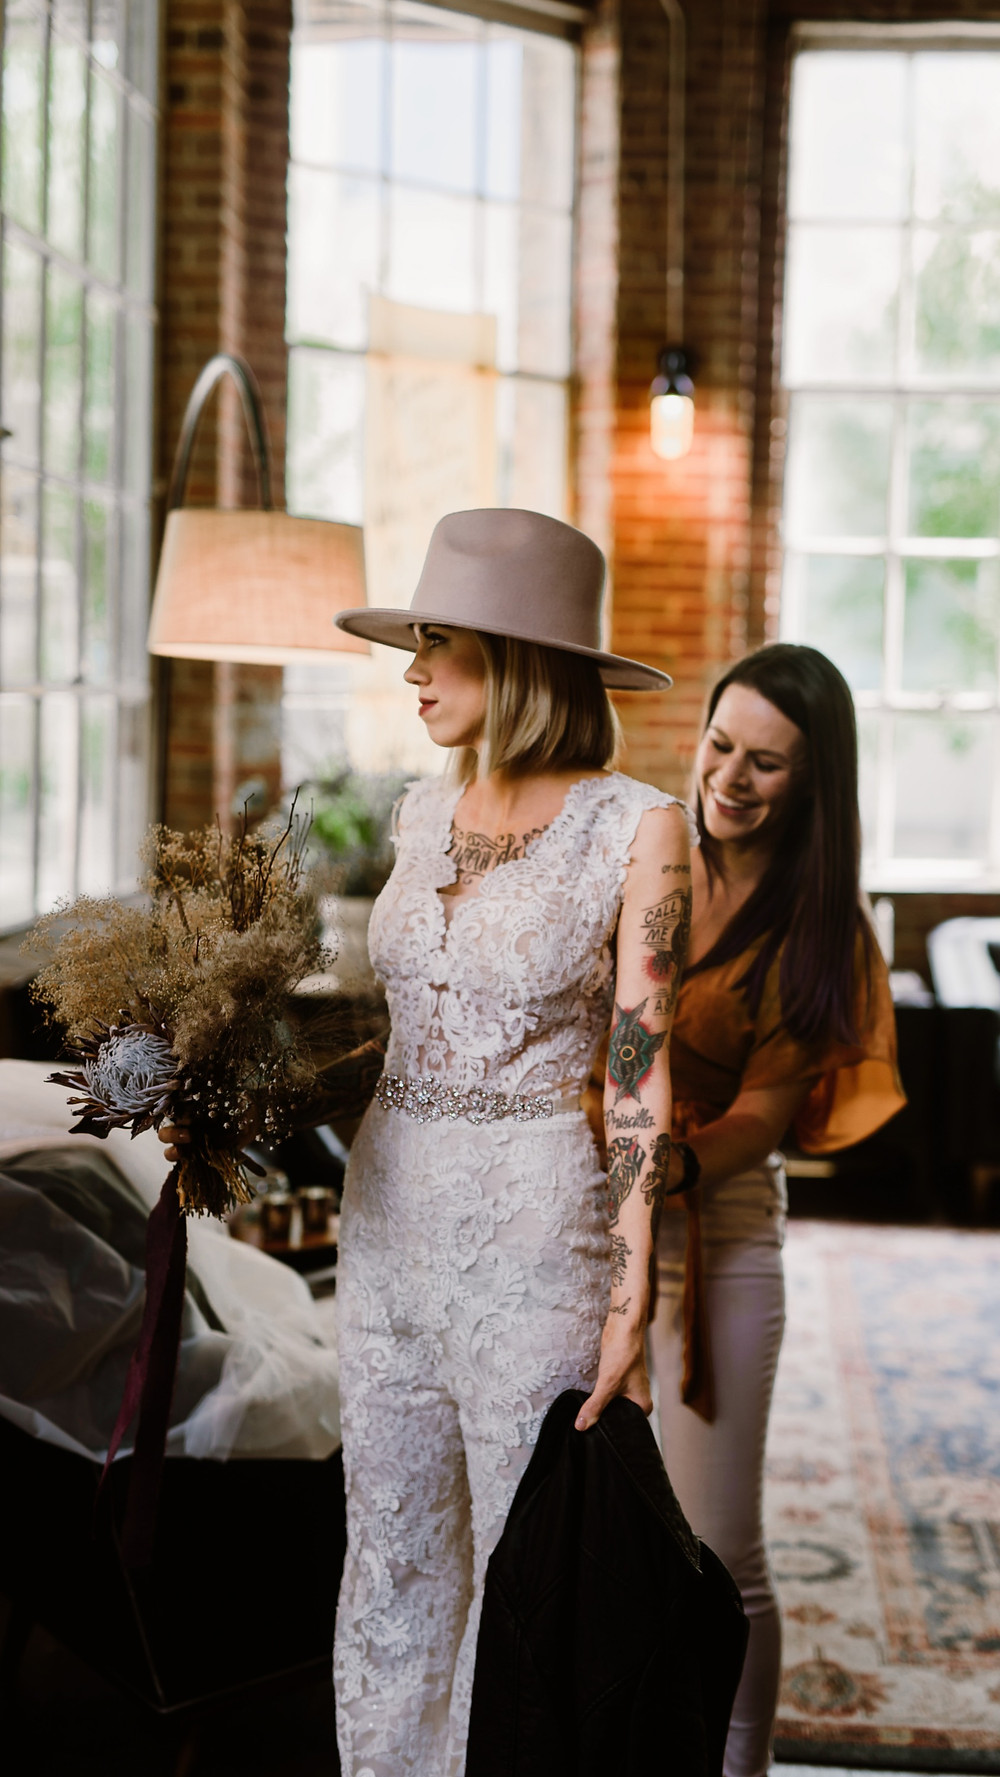 A wedding planner helping with some final details for a brides outfit